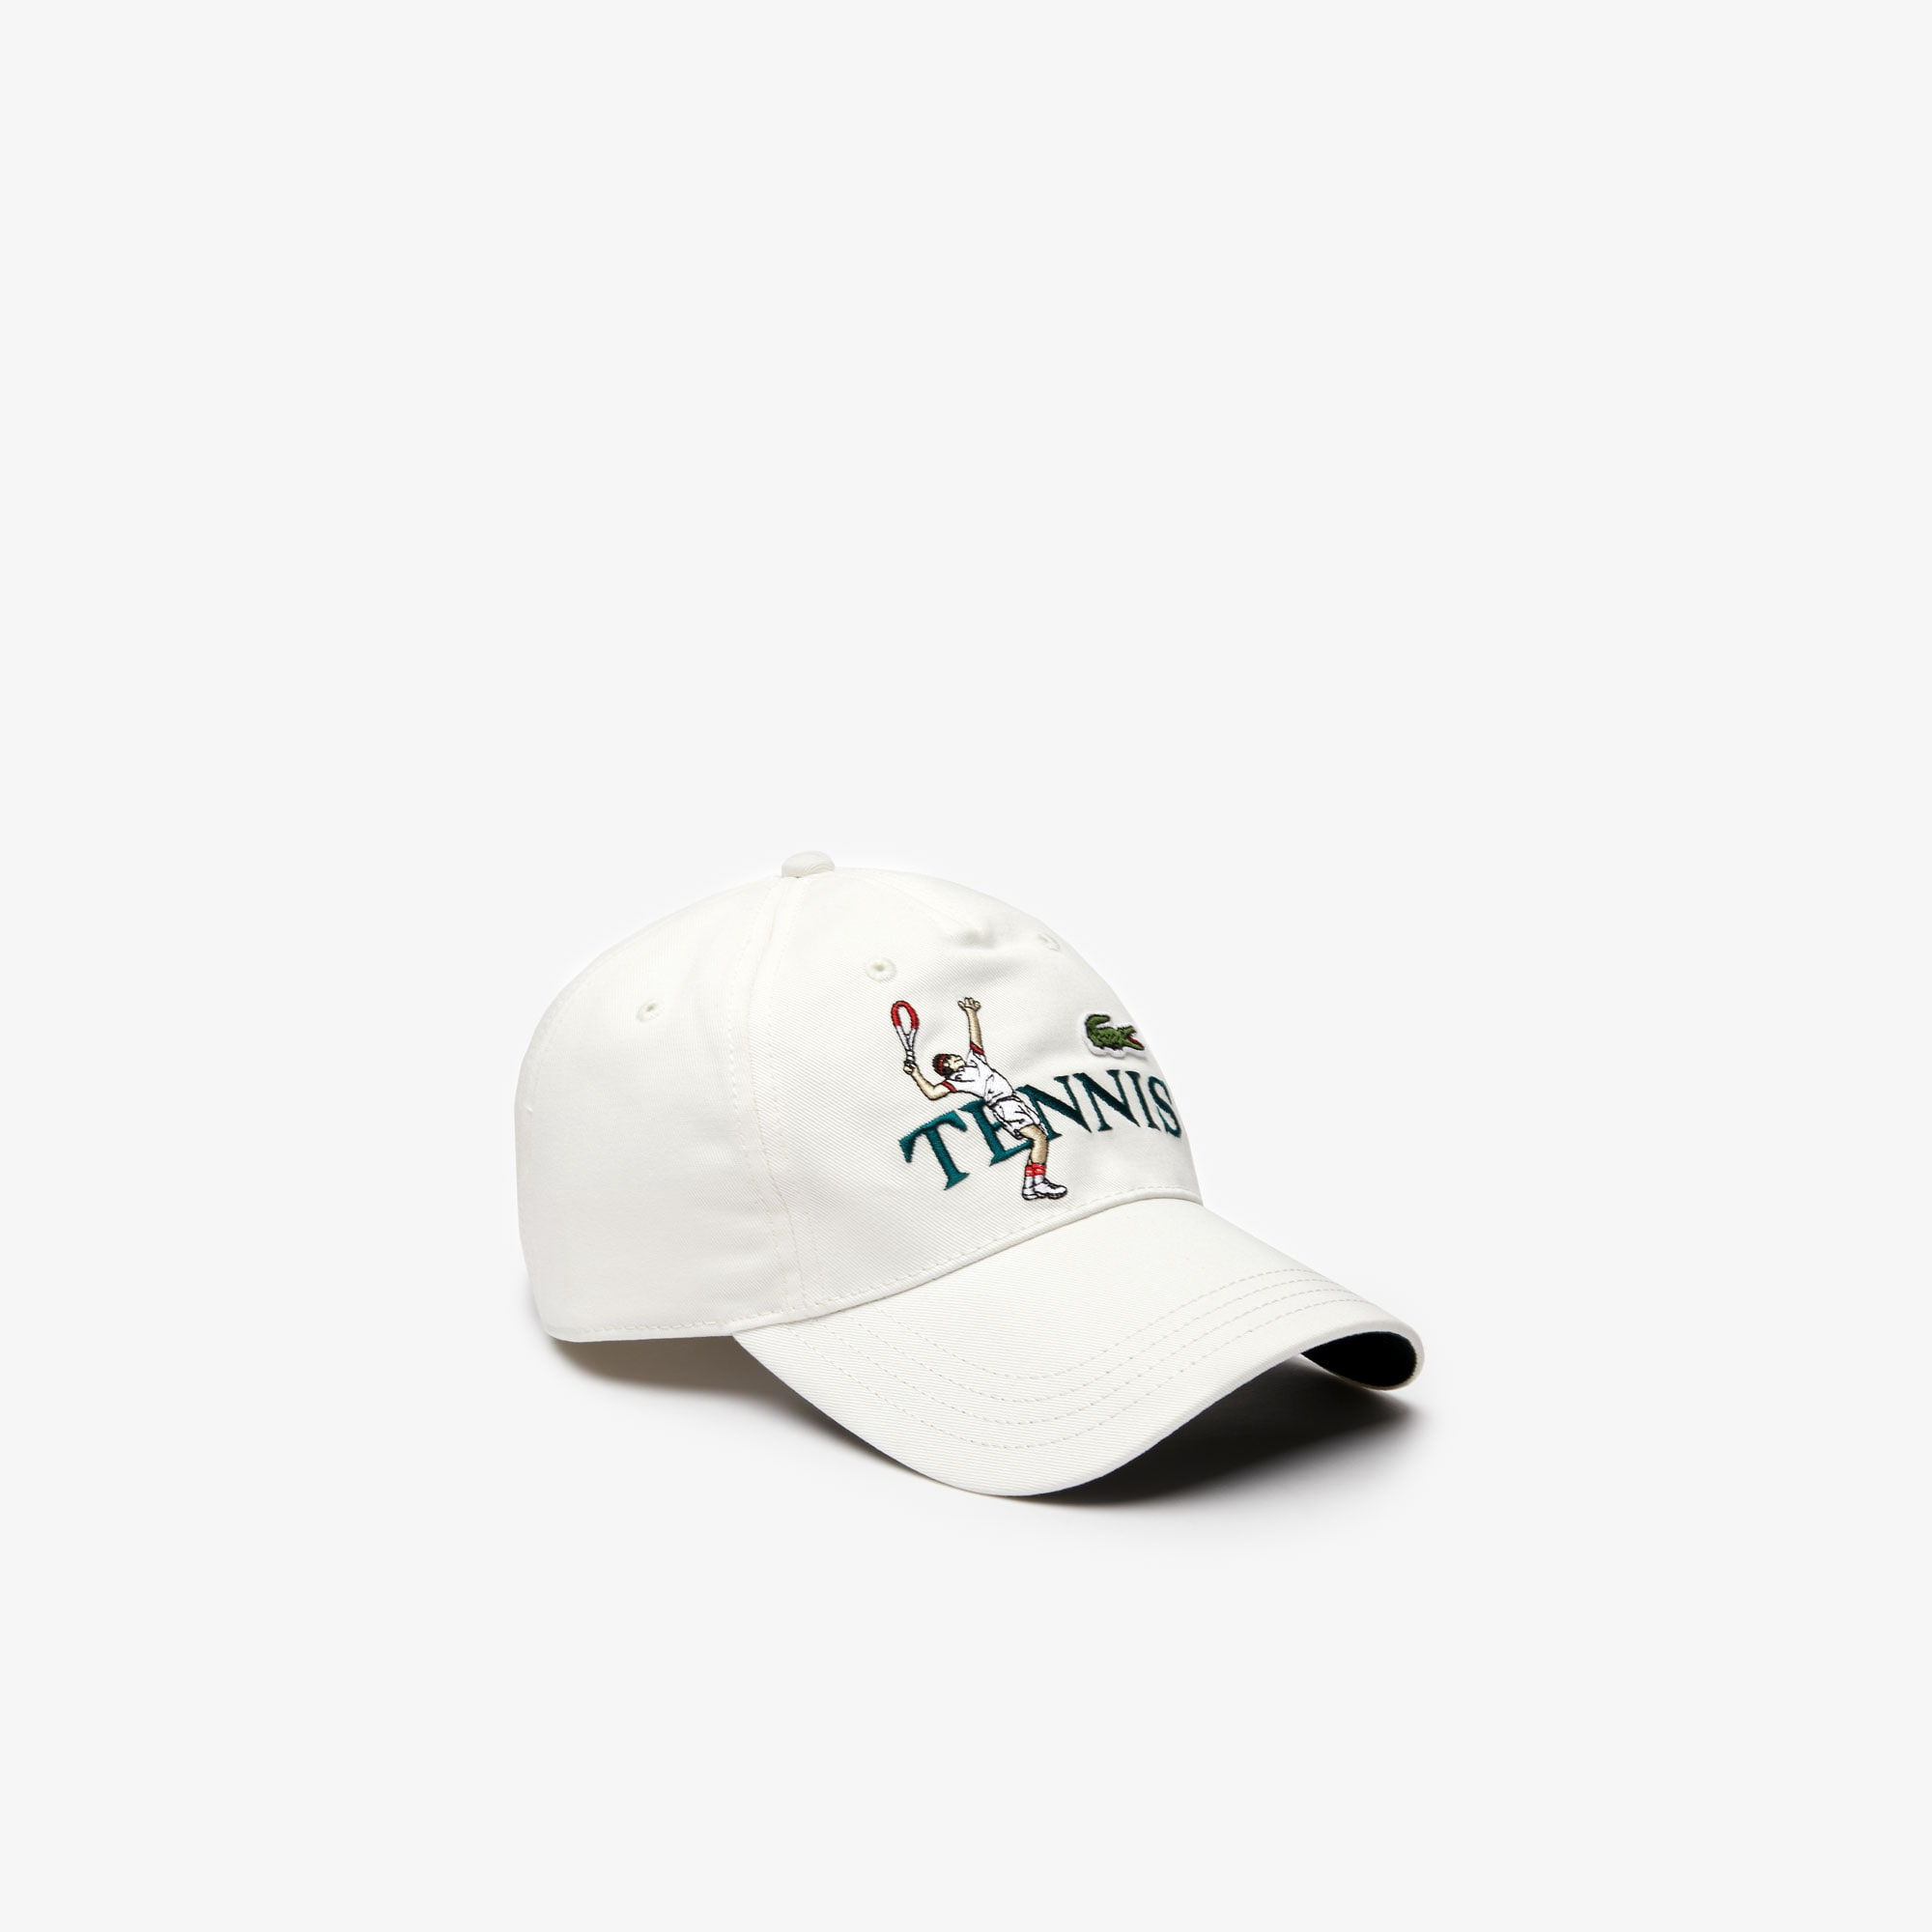 Unisex Lacoste LIVE Embroidered Cotton Cap